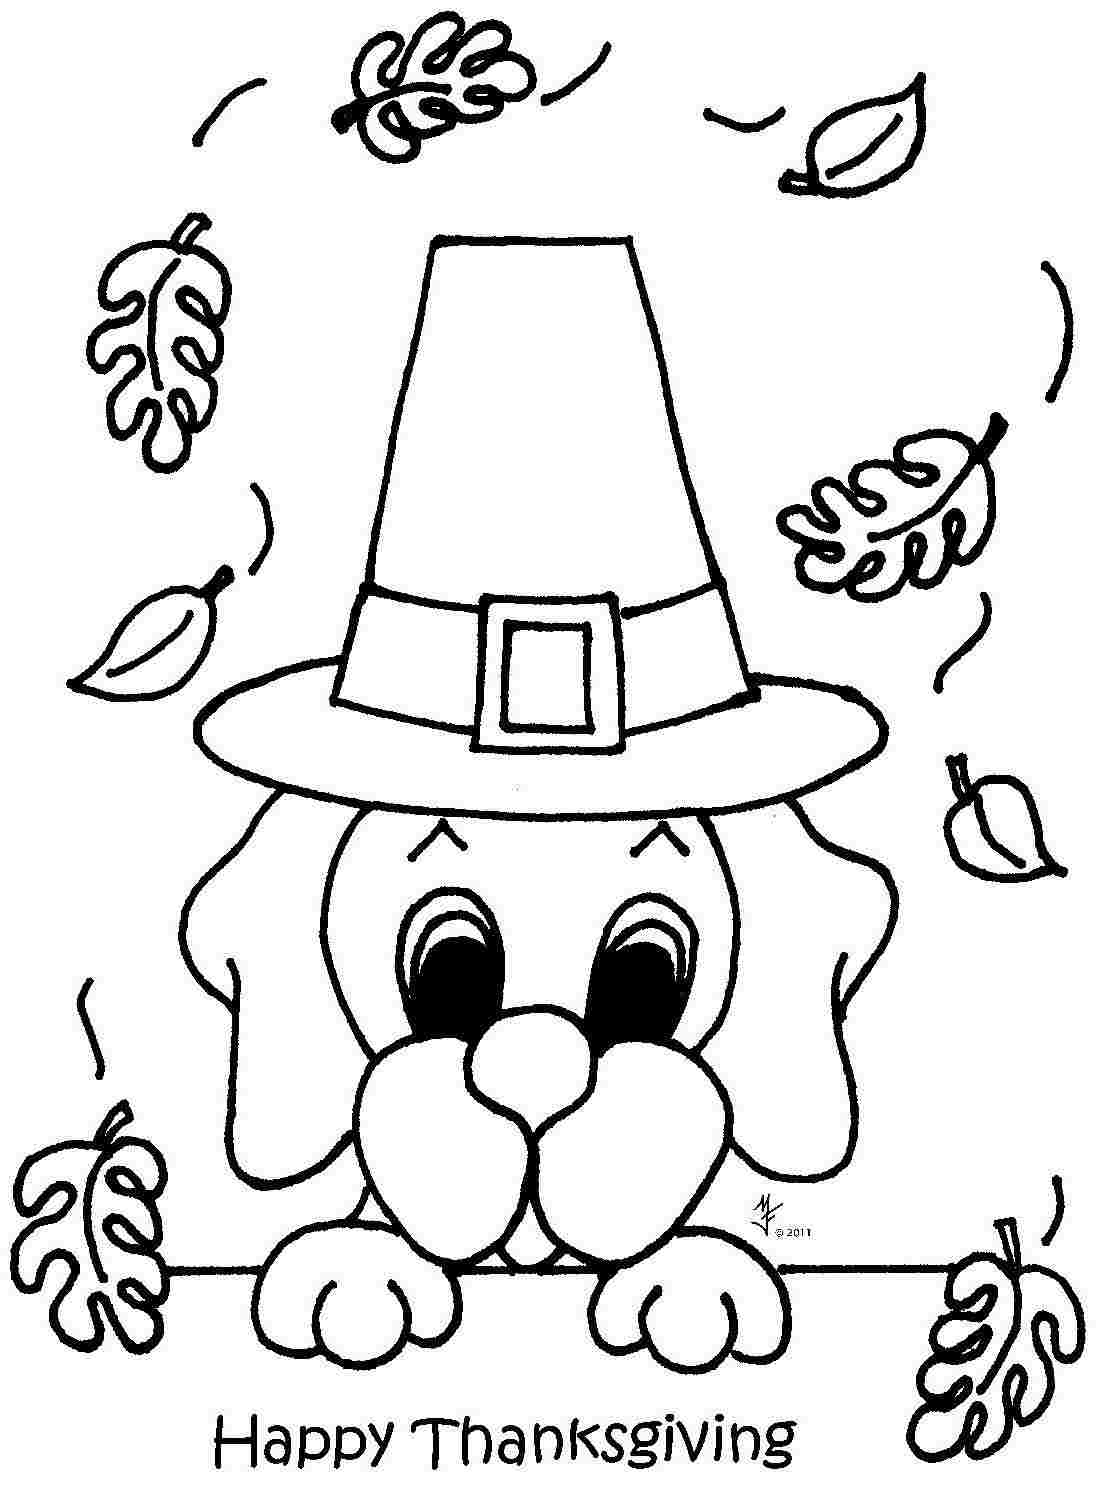 Download Coloring Pages  Happy Thanksgiving Coloring Pages  Happy